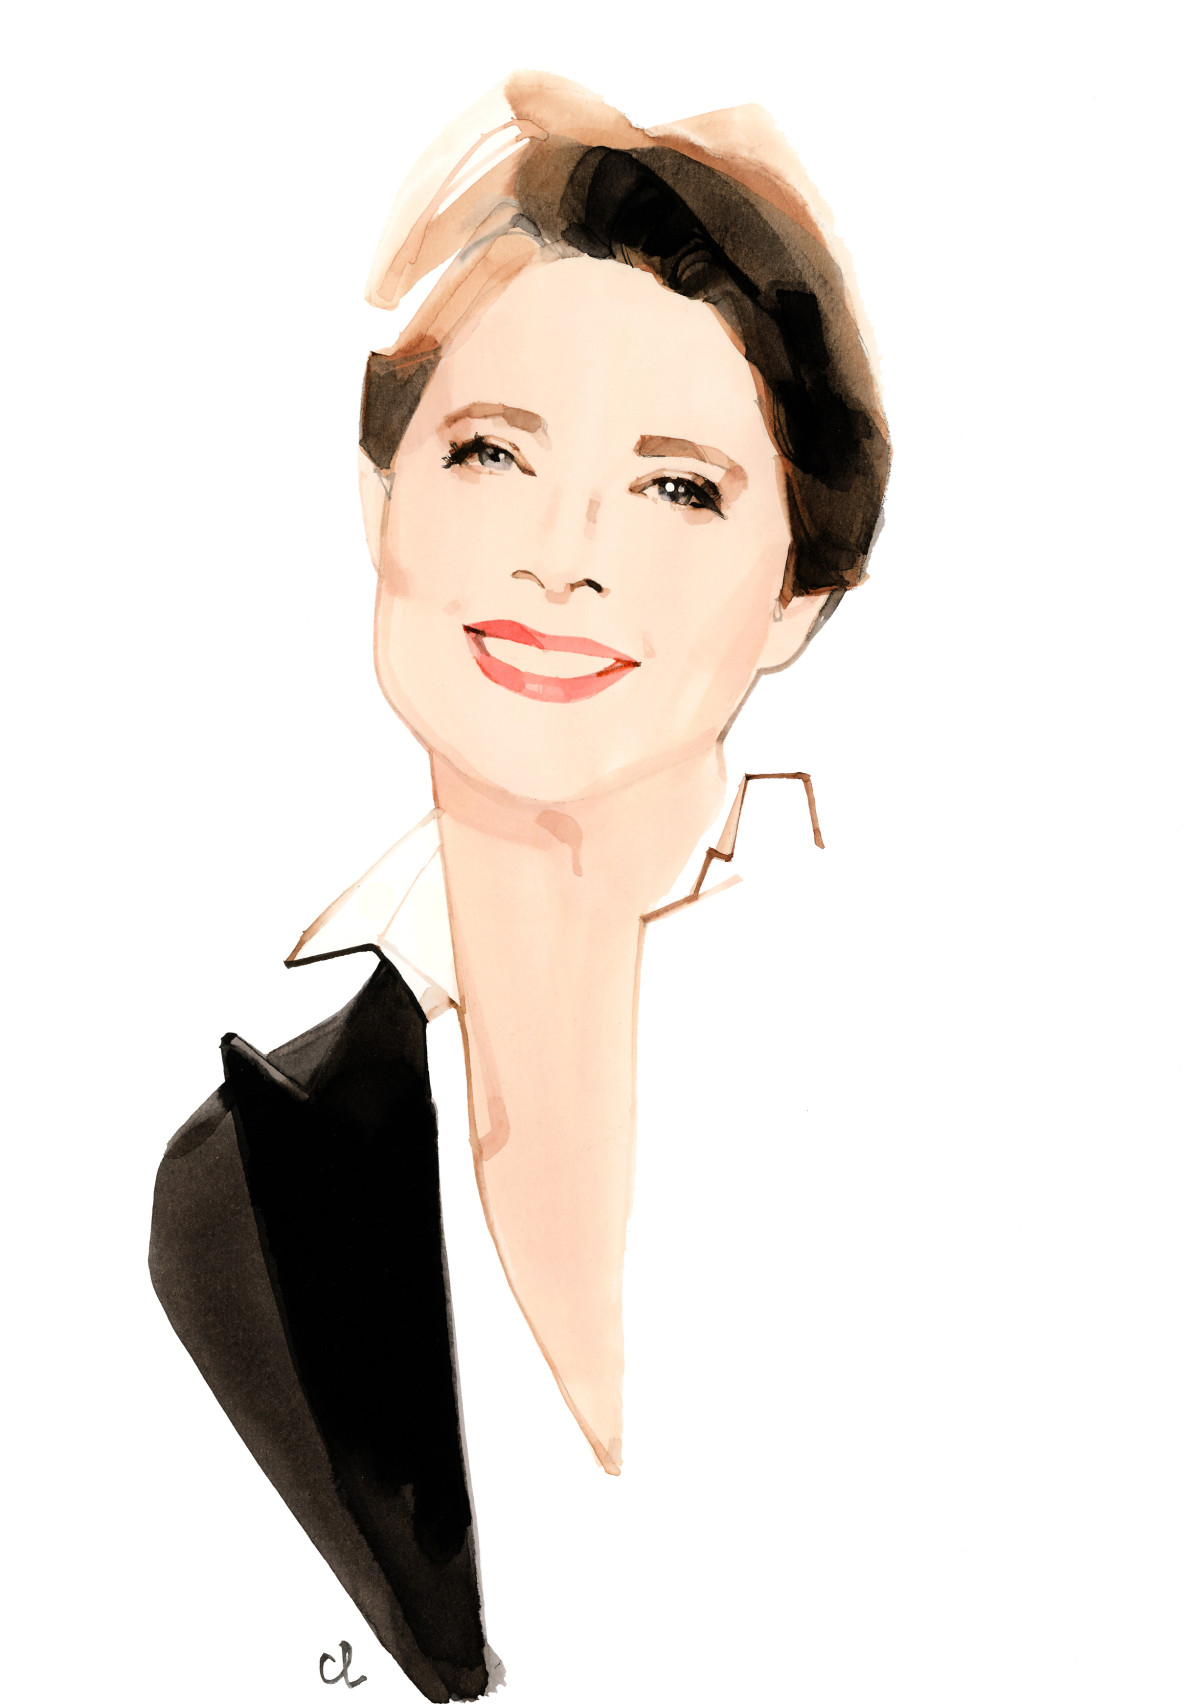 Lancôme Spokesmodel Isabella Rossellini Is Back